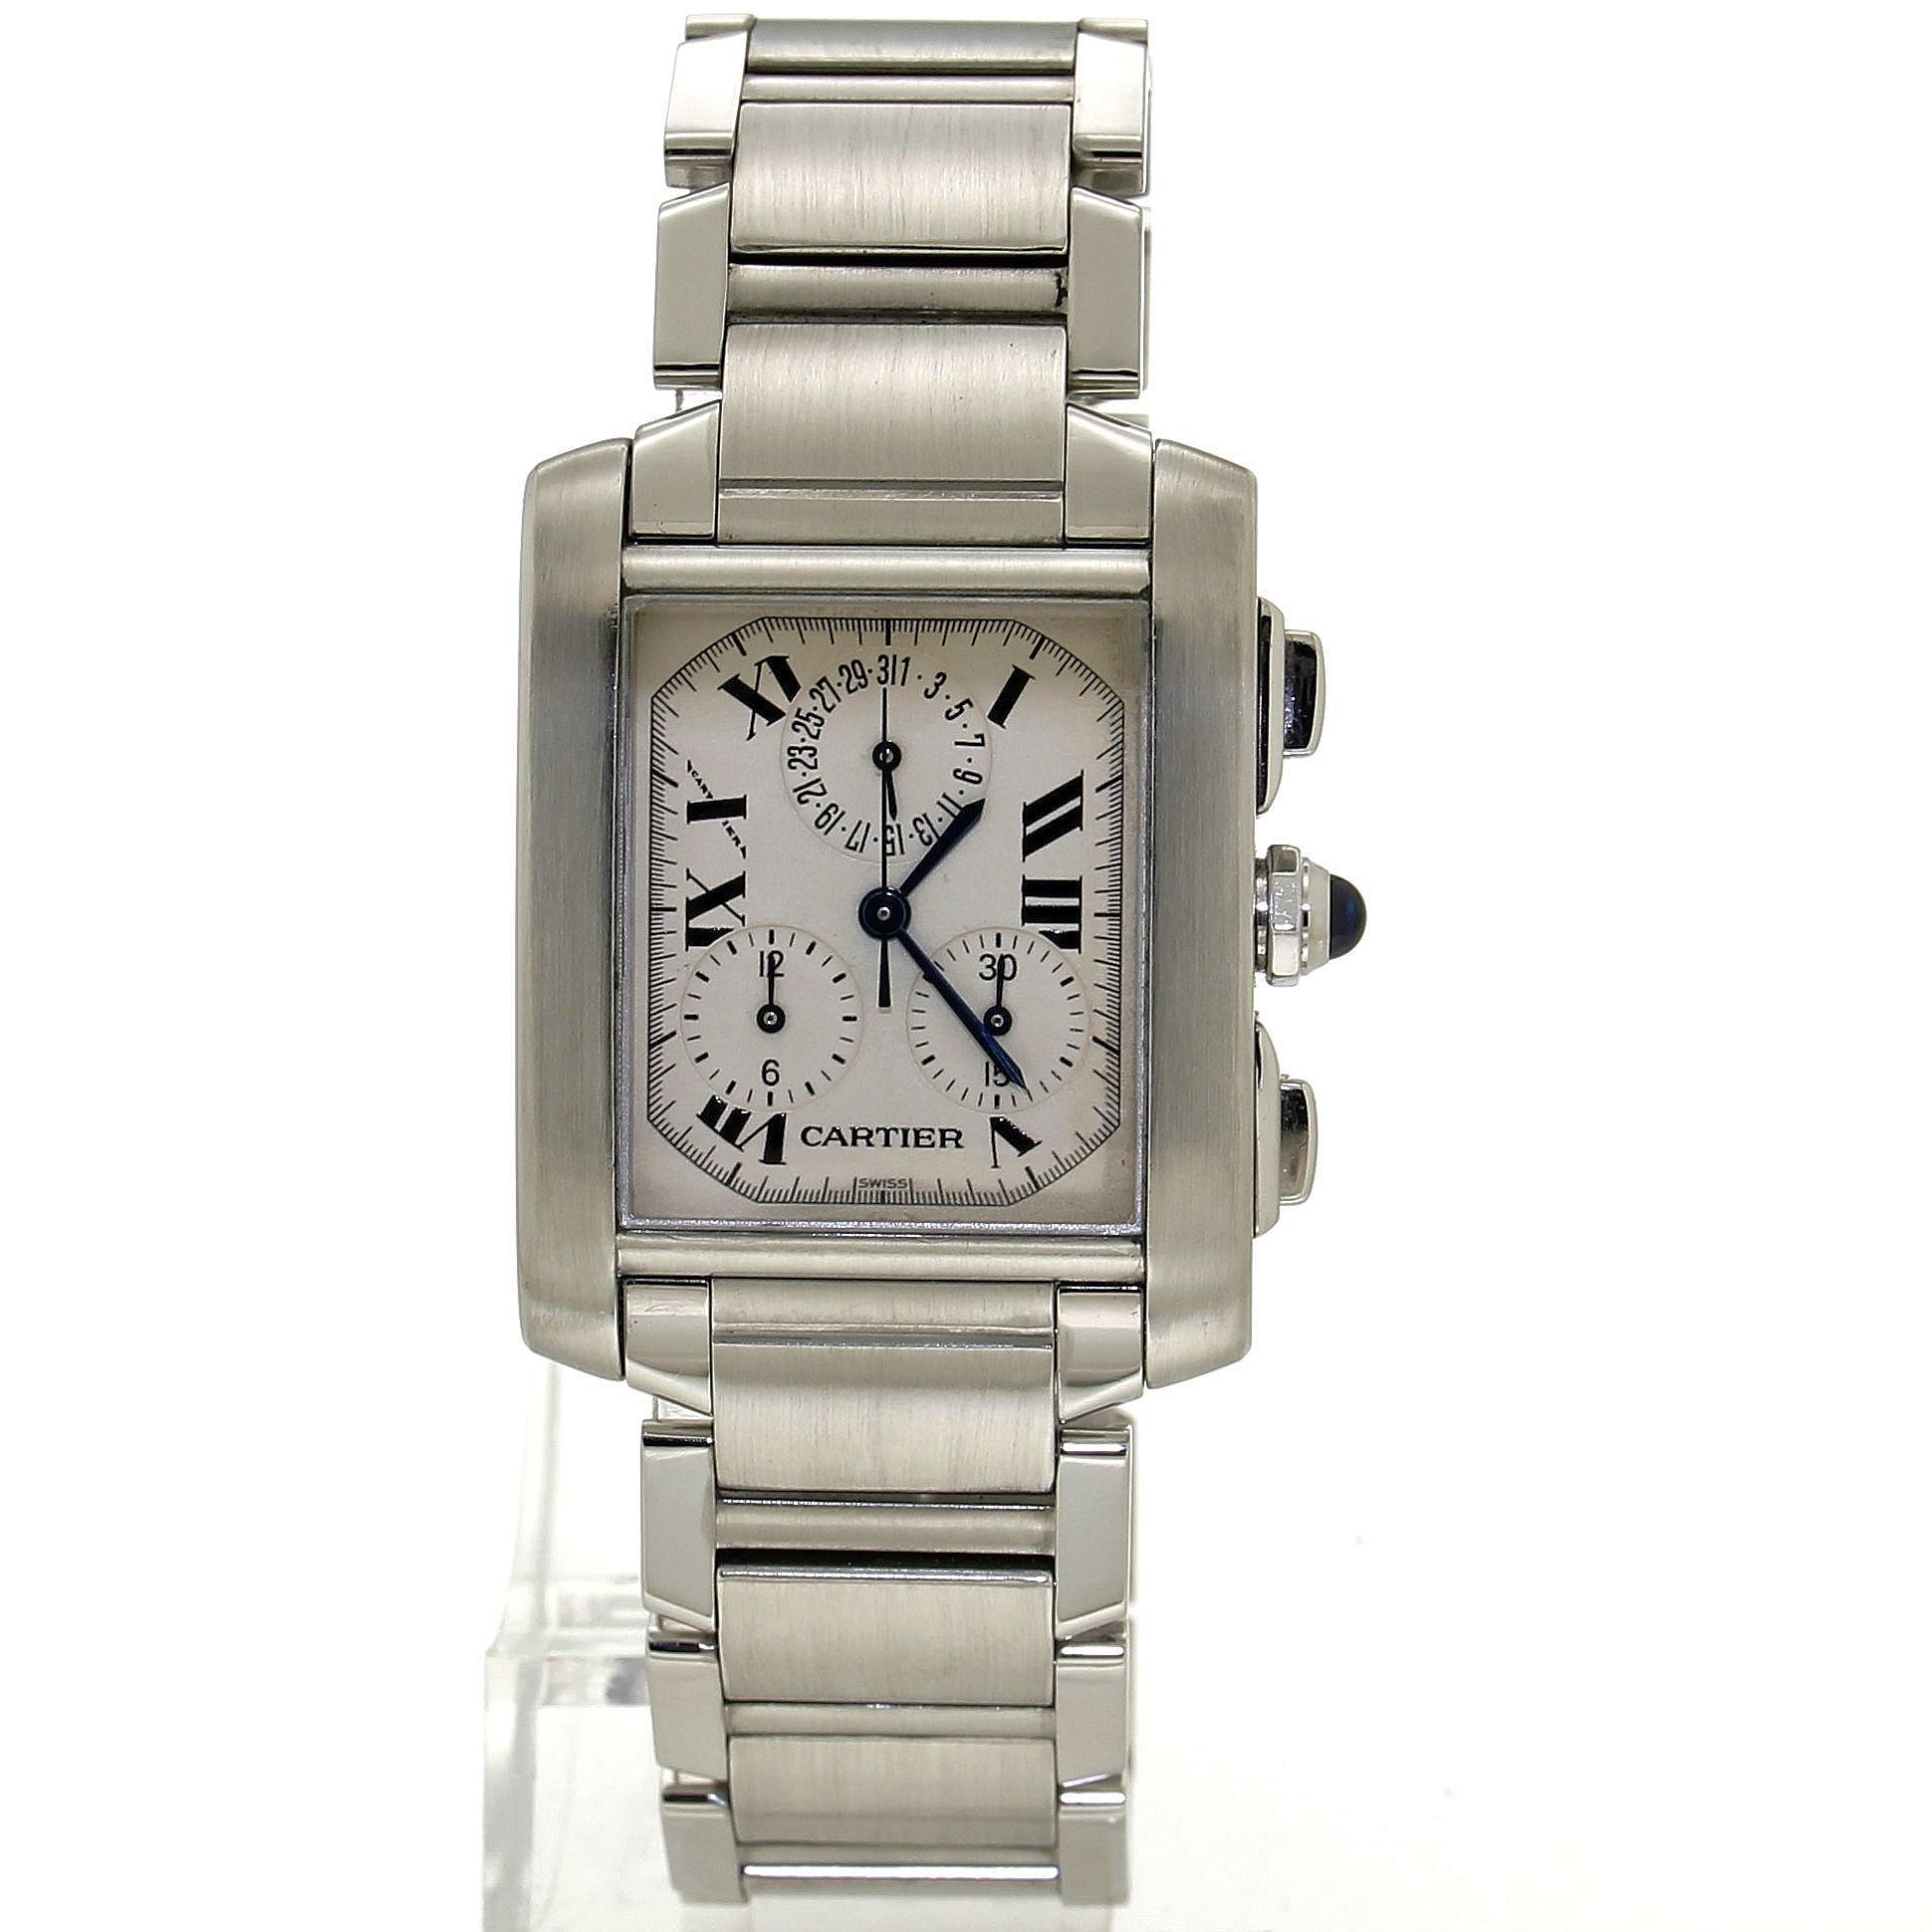 uk original cartier want time l all news style tank watches classic list